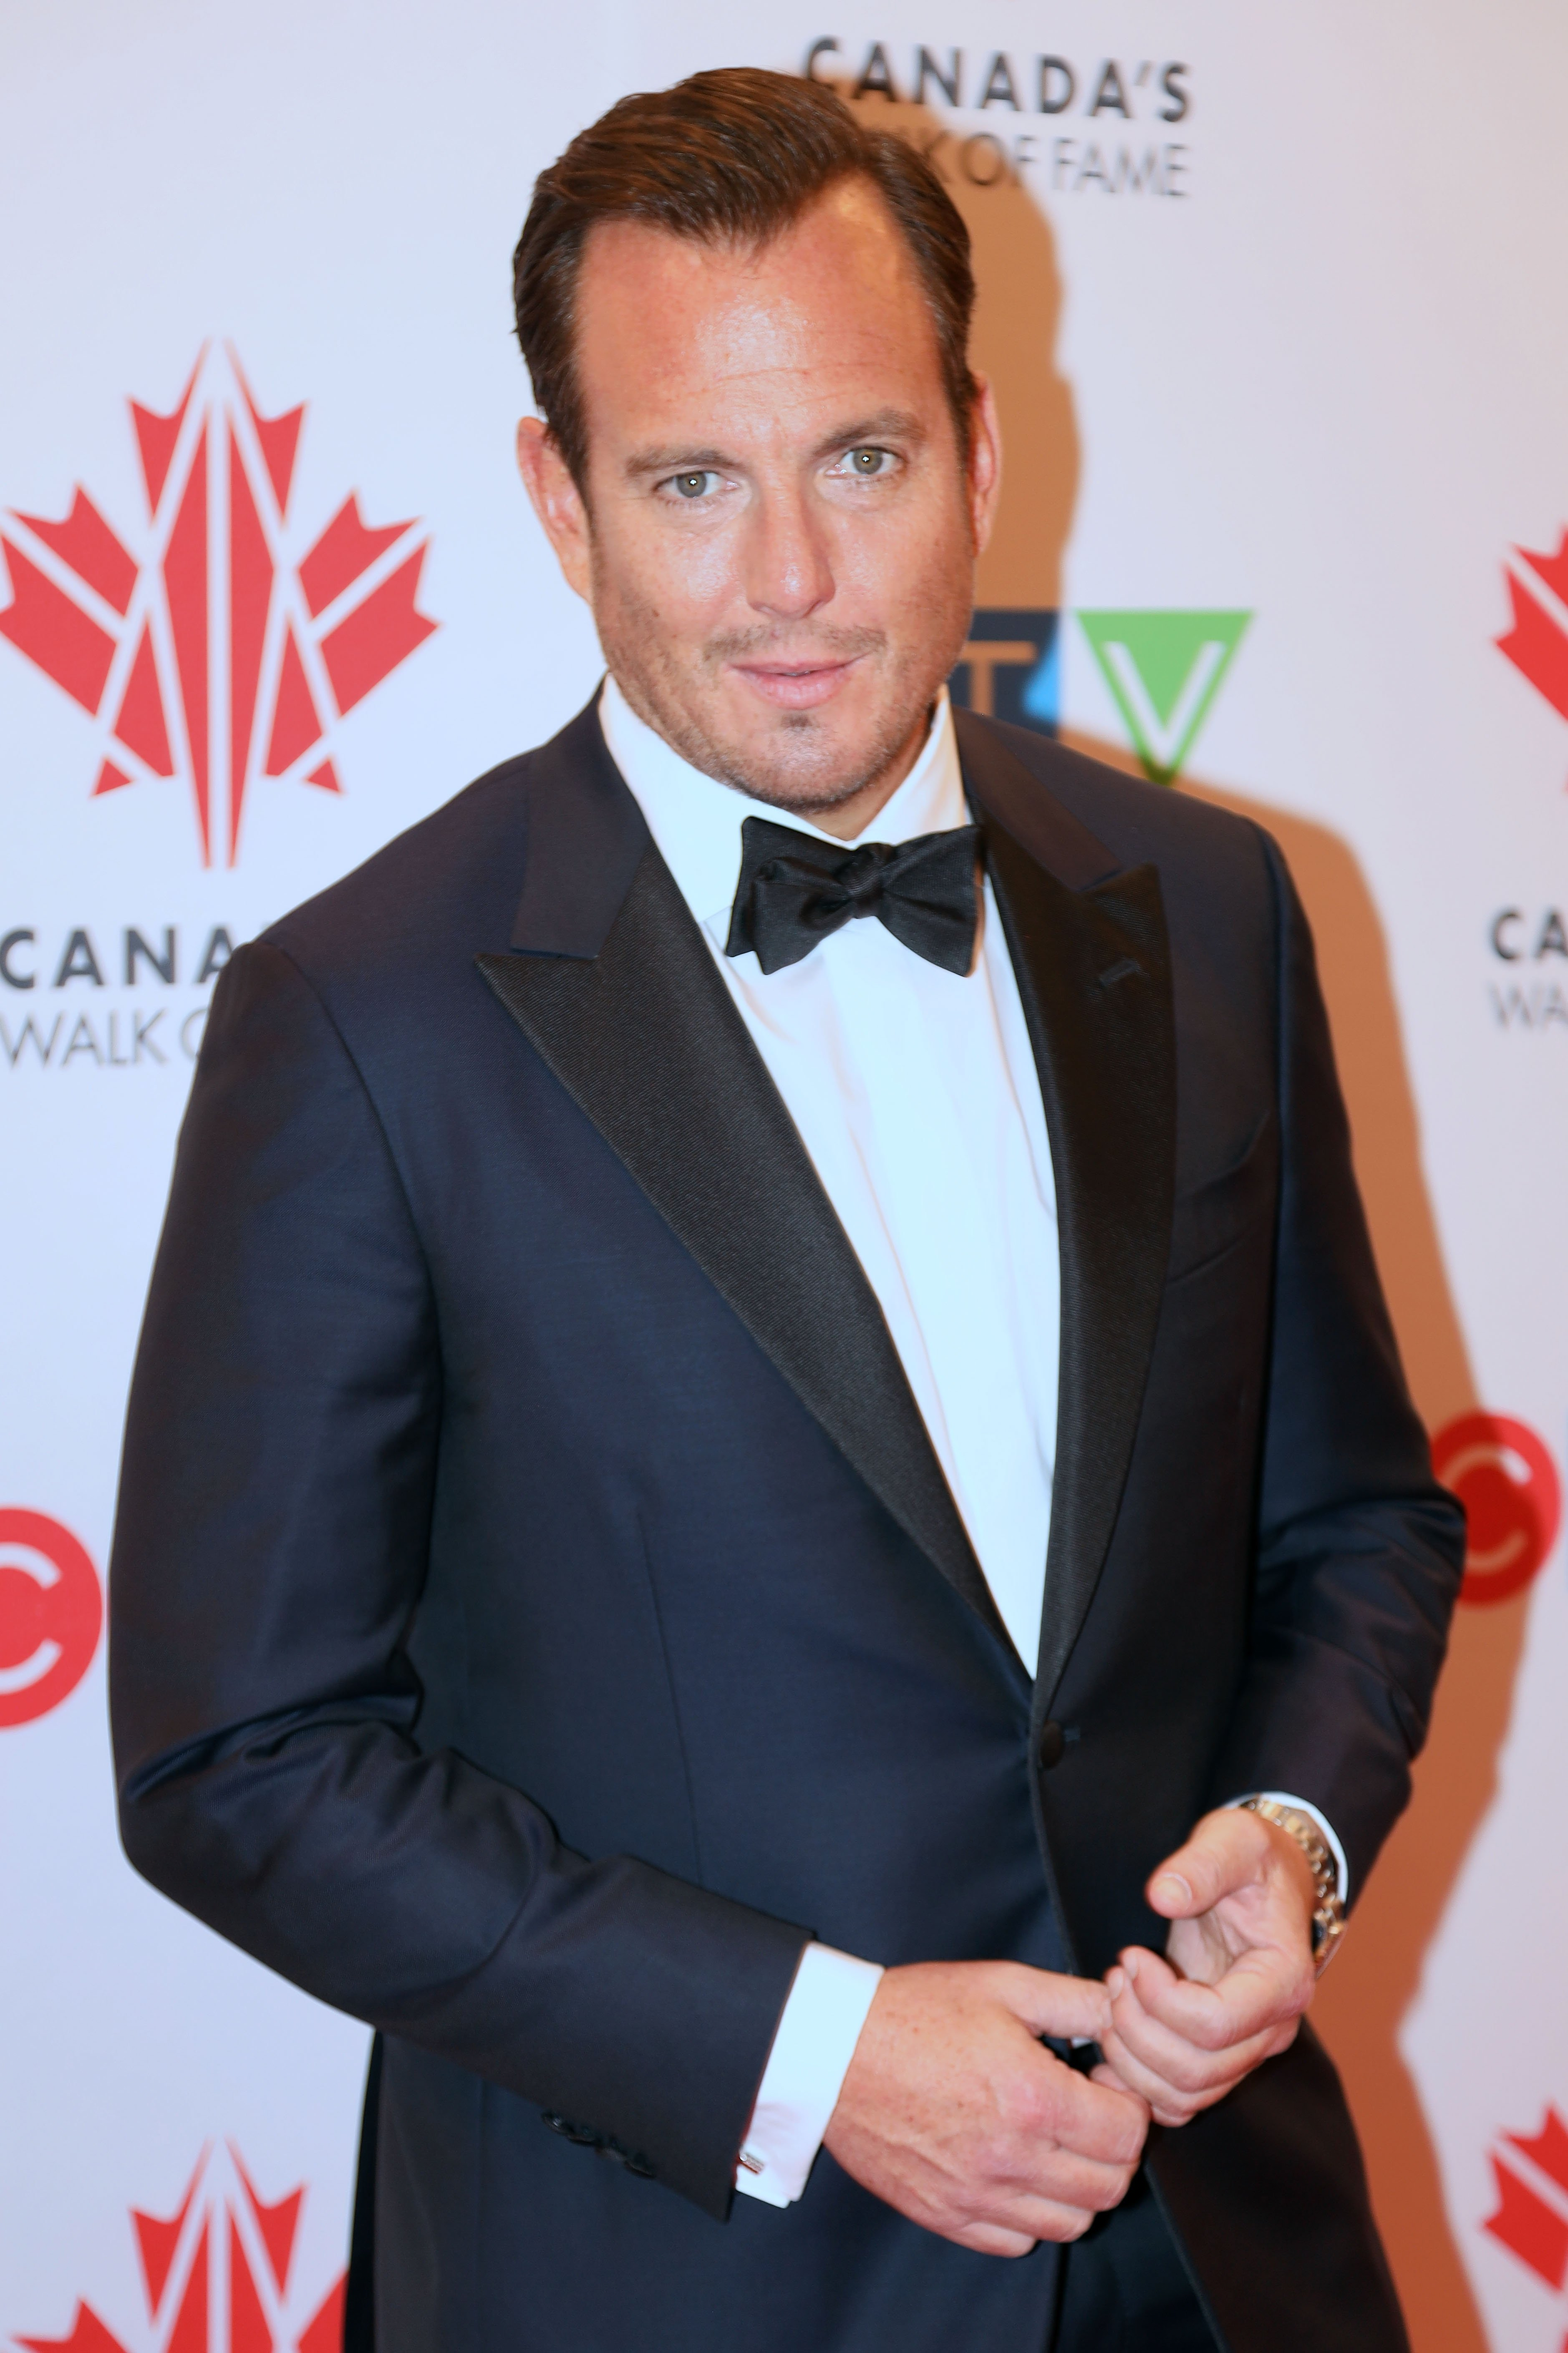 : Will Arnett attends the 2019 Canada's Walk Of Fame on November 23, 2019 in Toronto, Canada at Metro Toronto Convention Centre on November 23, 2019 | Photo: Getty Images